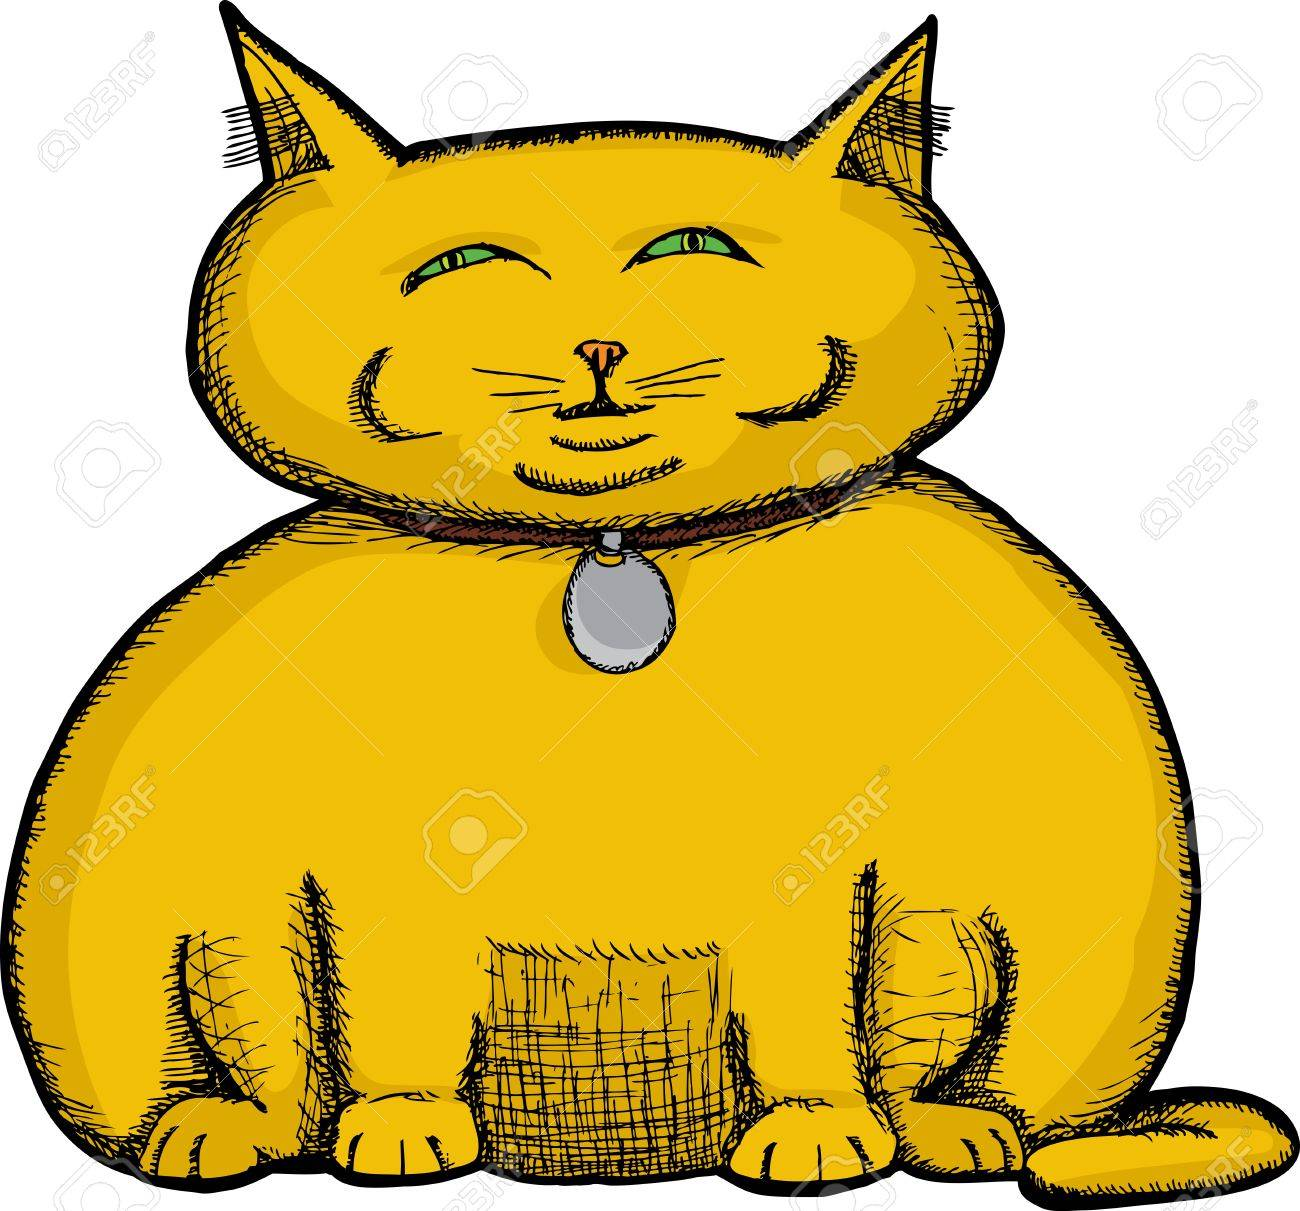 2 229 fat cat cliparts stock vector and royalty free fat cat rh 123rf com fat cat clipart free fat cat clipart images